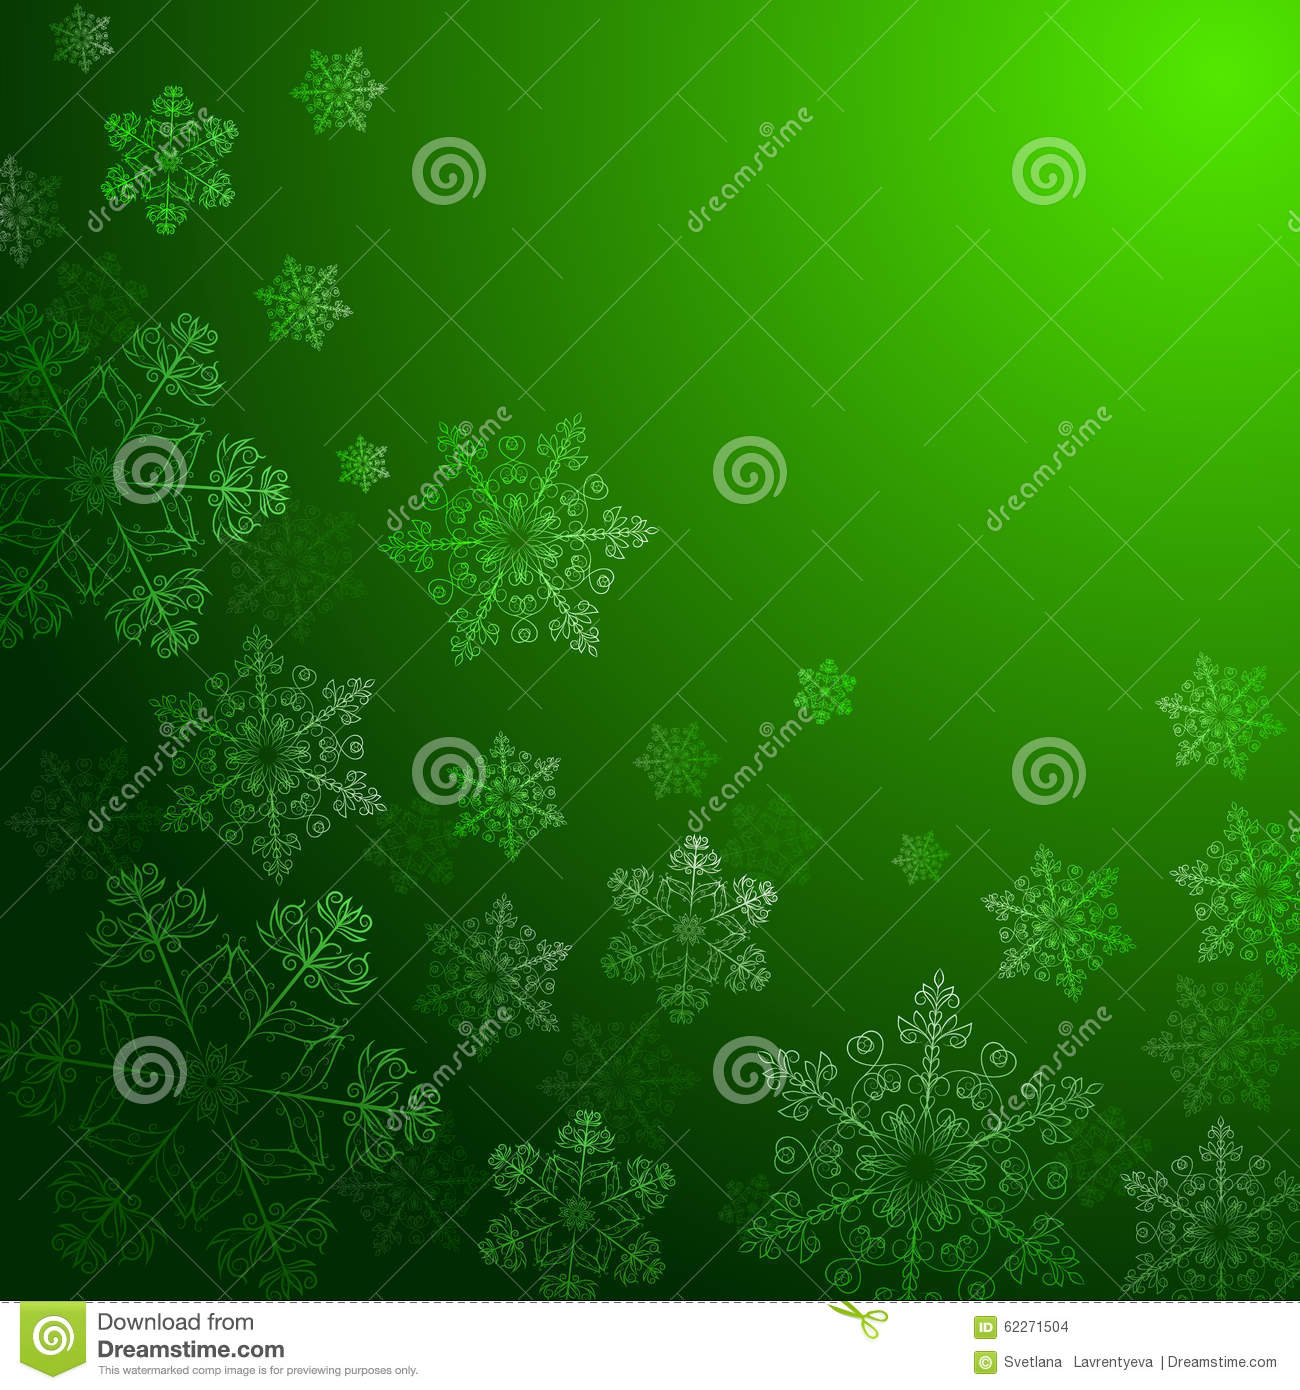 Green Background With Snowflakes, Stock Vector - Image ...